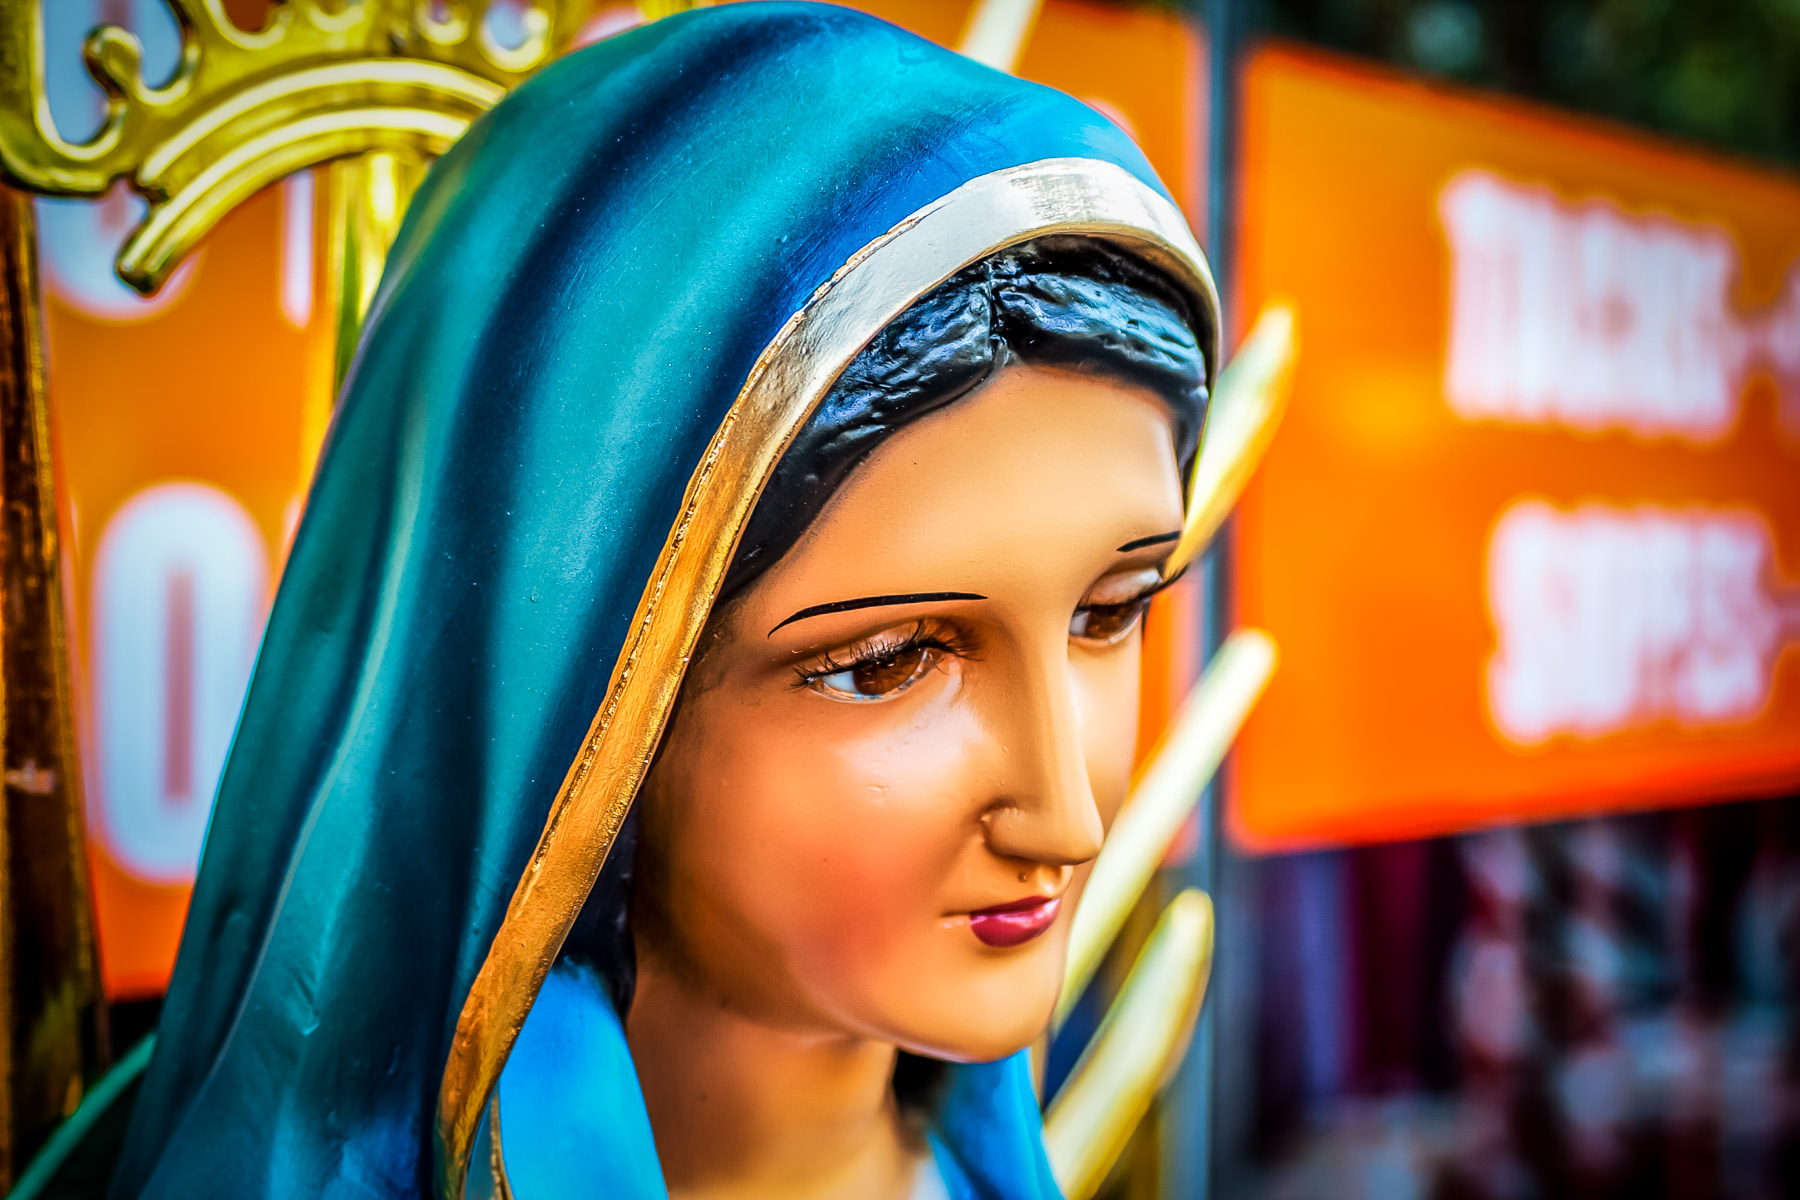 A statue of the Virgin Mary spotted in Oak Cliff, Dallas.